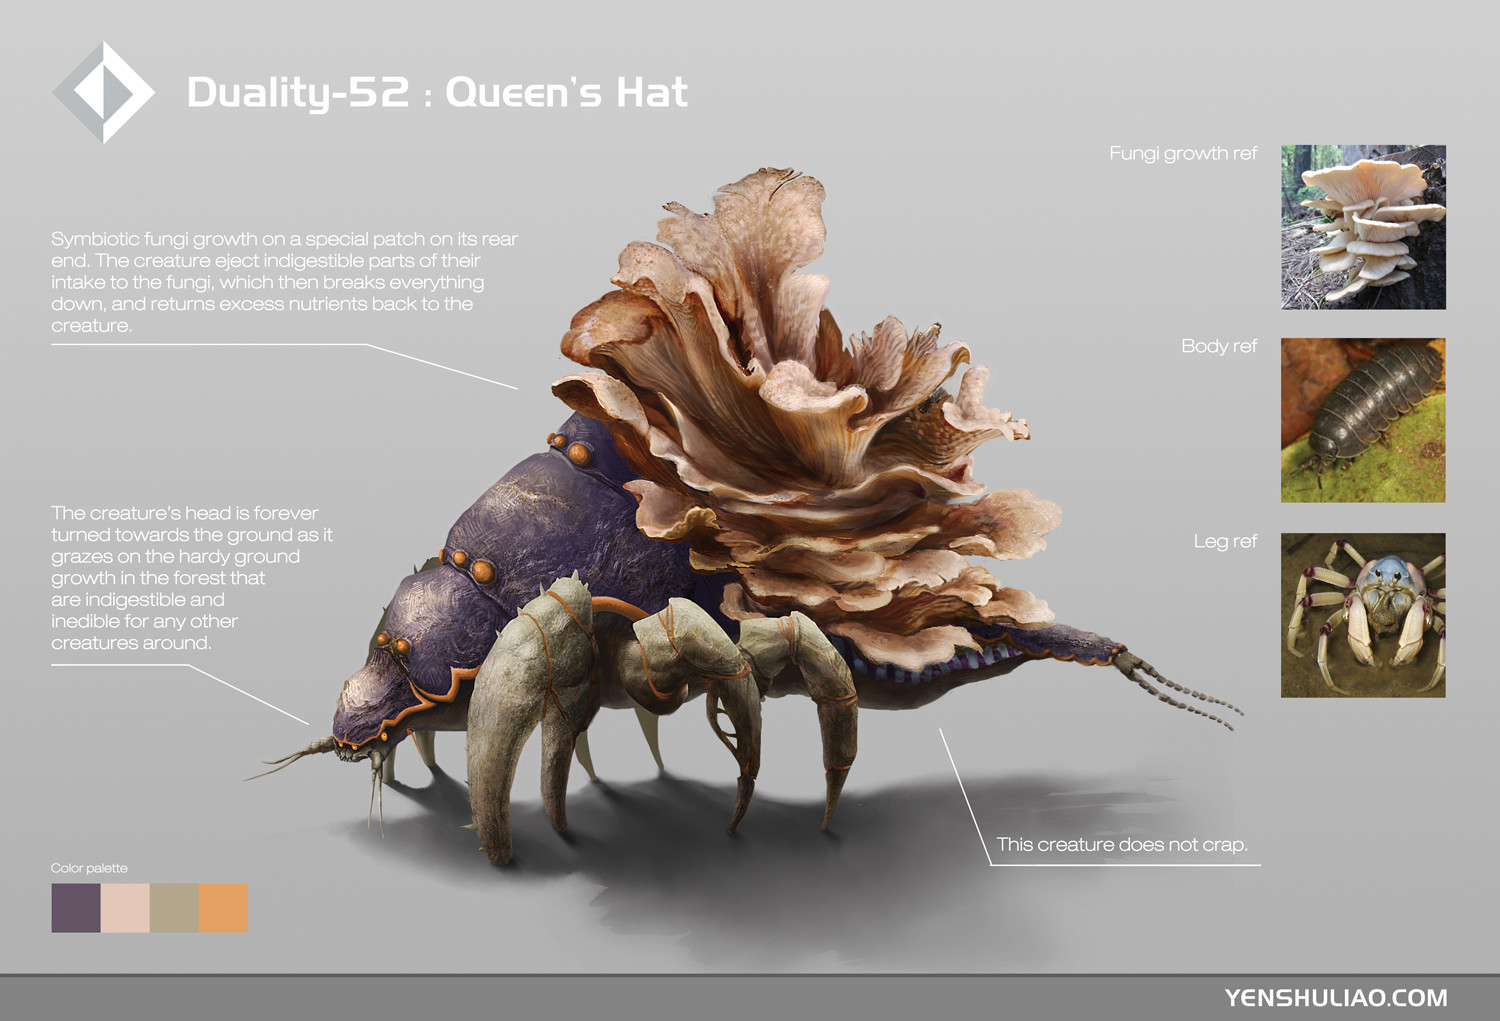 Duality-52 : Queen's Hat